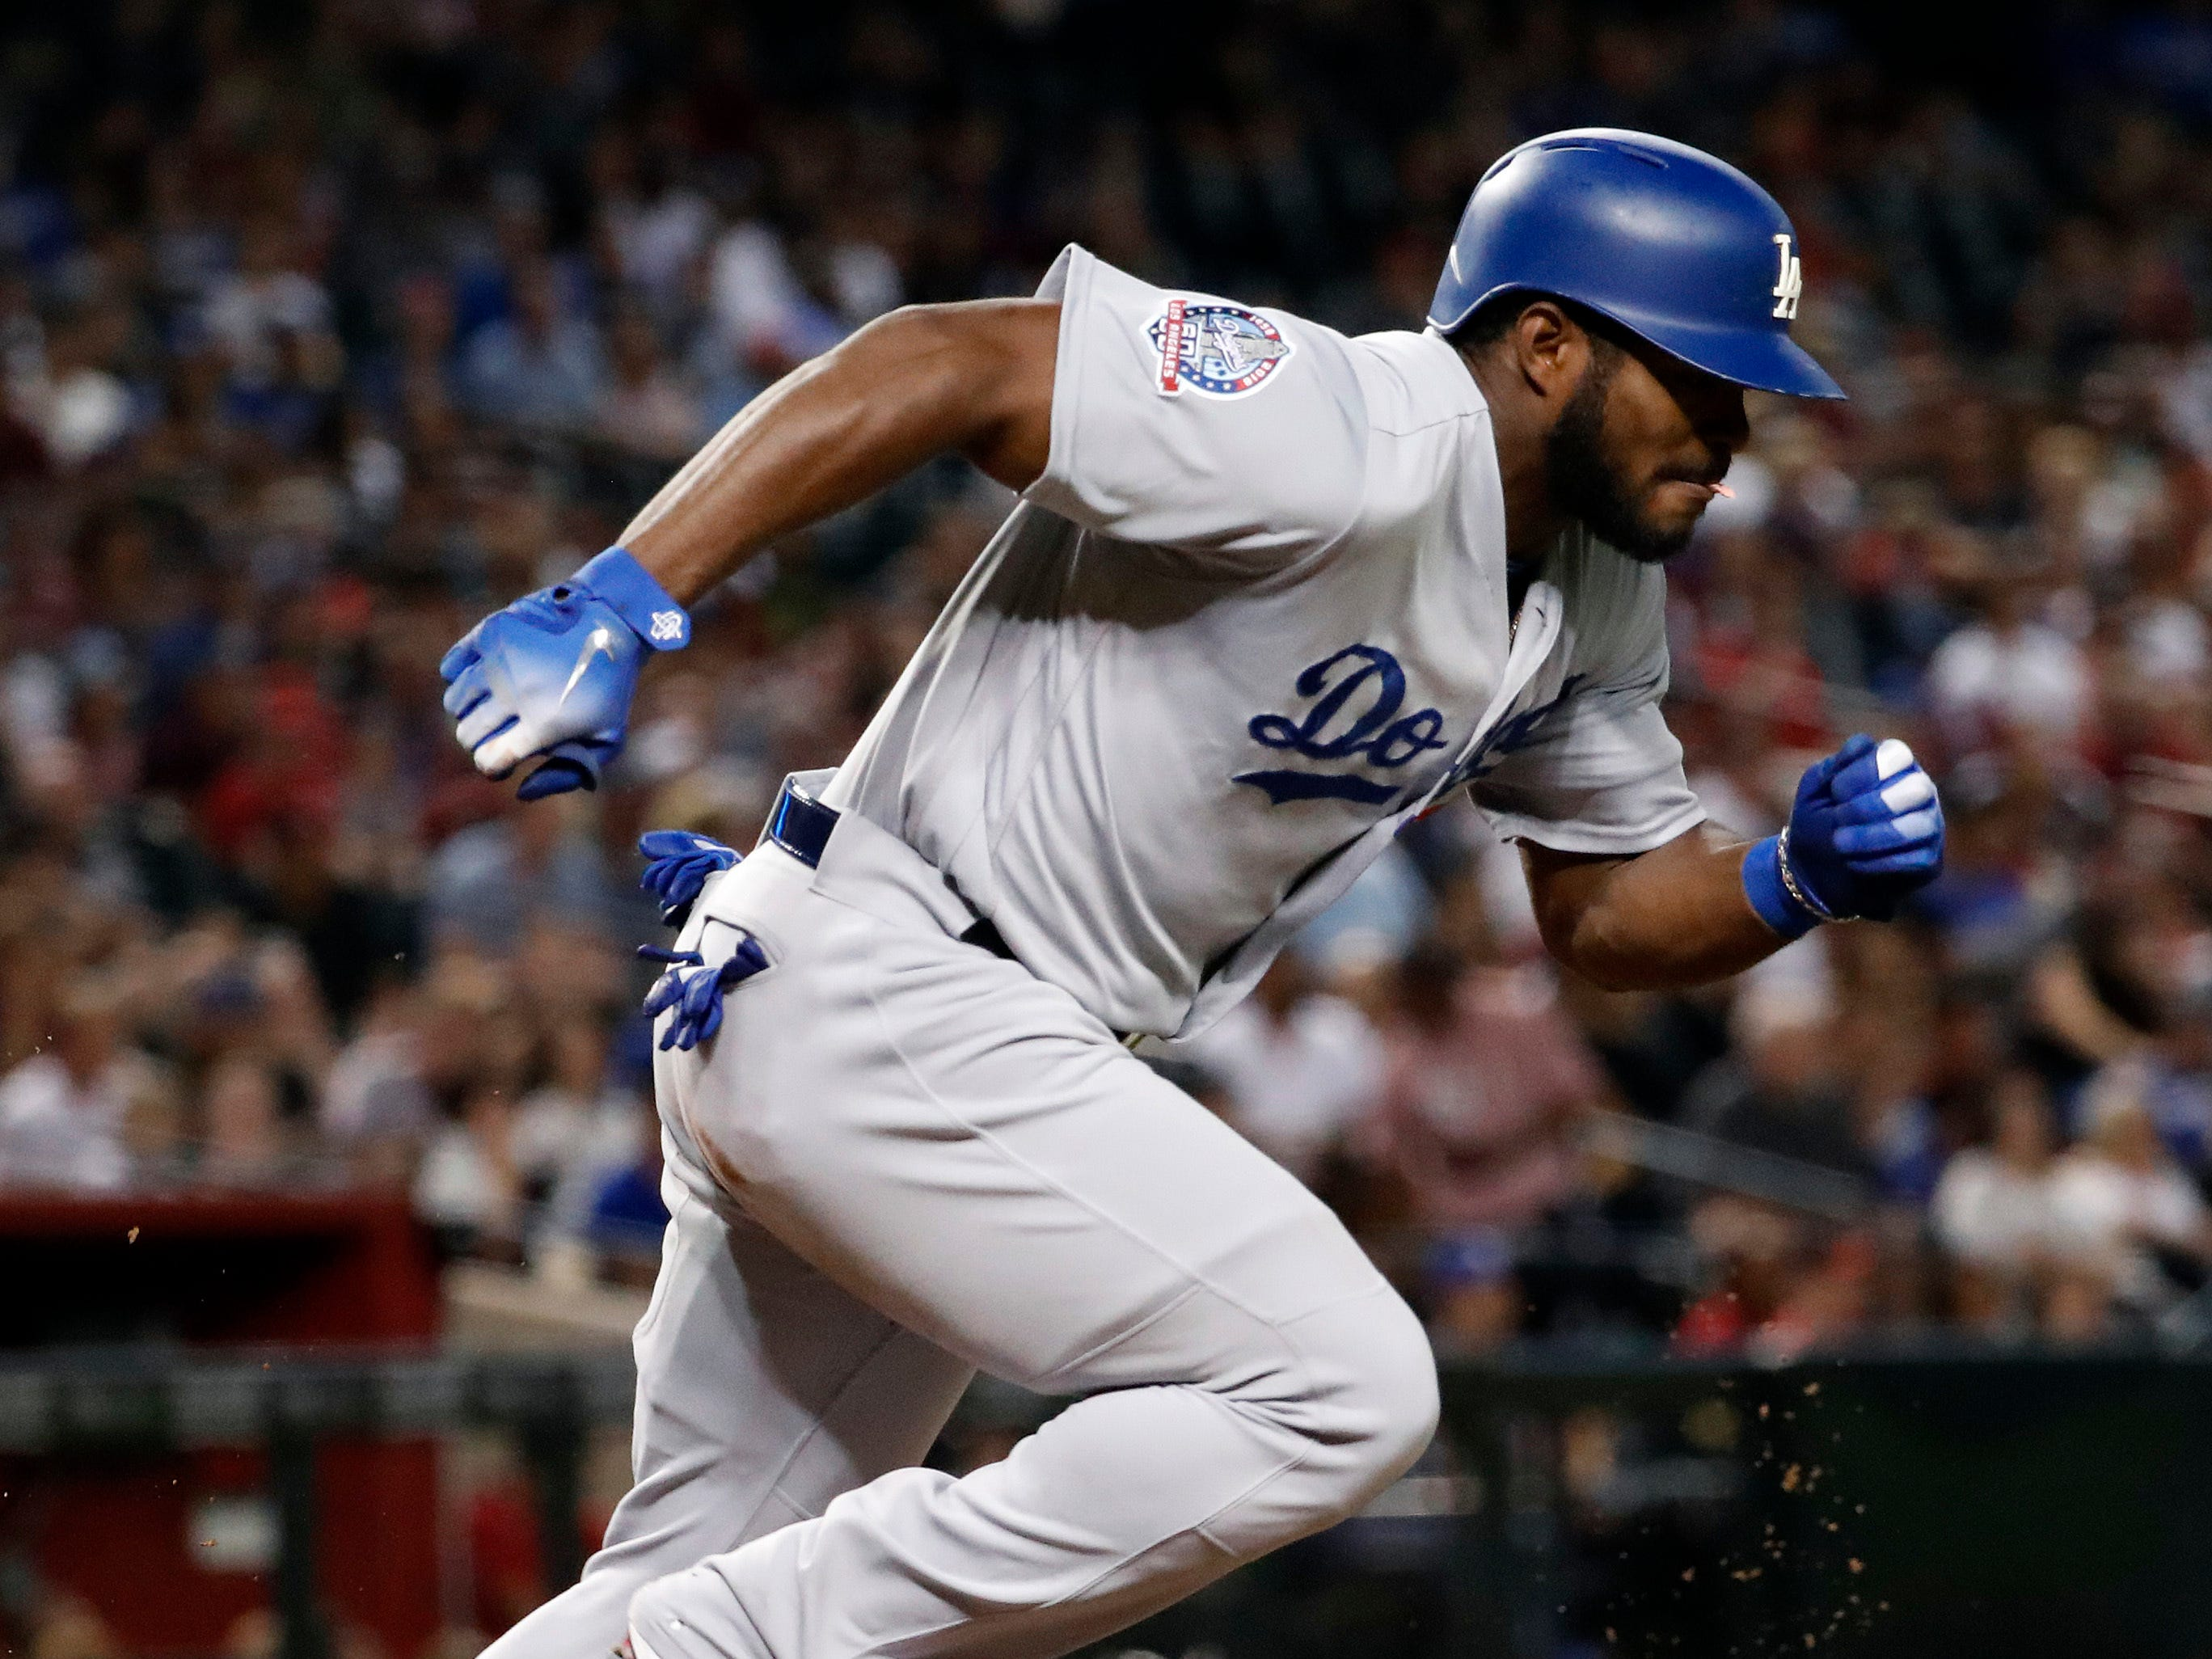 Los Angeles Dodgers right fielder Yasiel Puig hits against the Arizona Diamondbacks during the fifth inning of a baseball game, Tuesday, Sept. 25, 2018, in Phoenix.